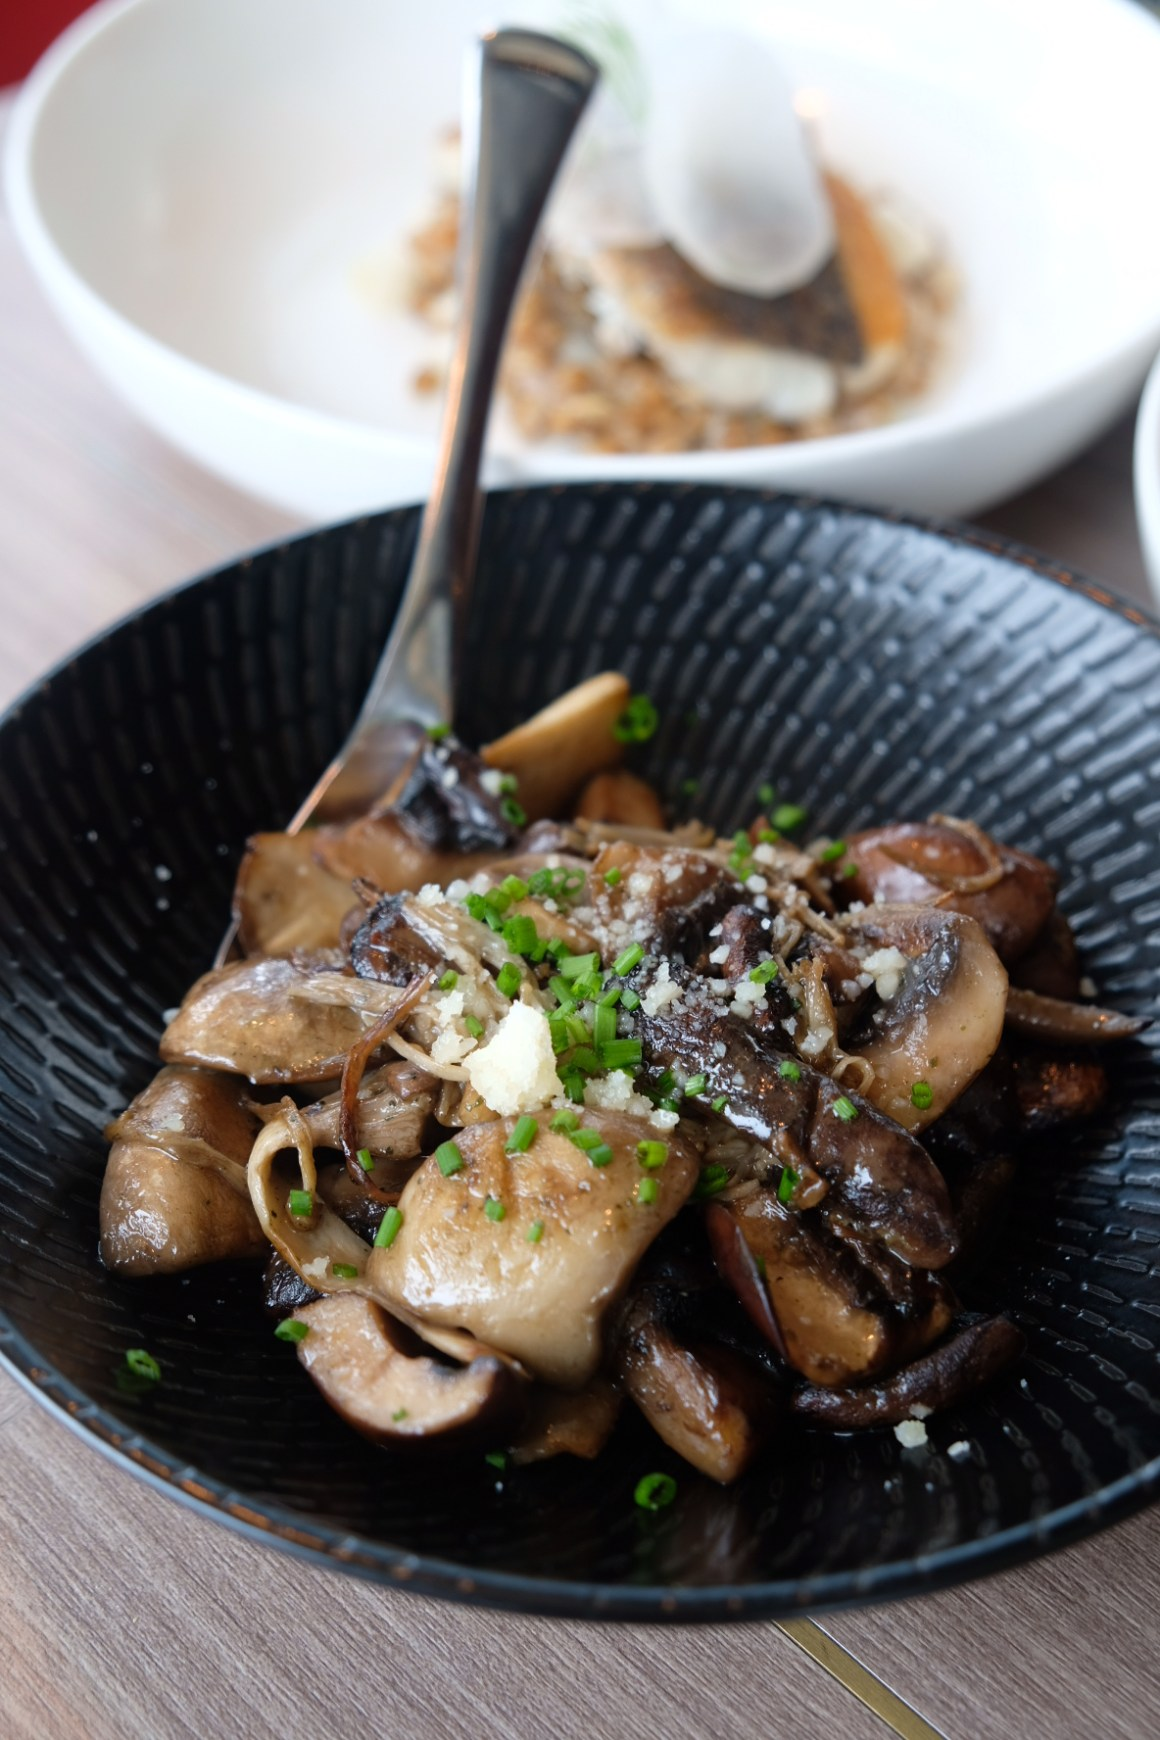 LeVeL33 Craft-Brewery Restaurant & Lounge - Mushroom ($13)